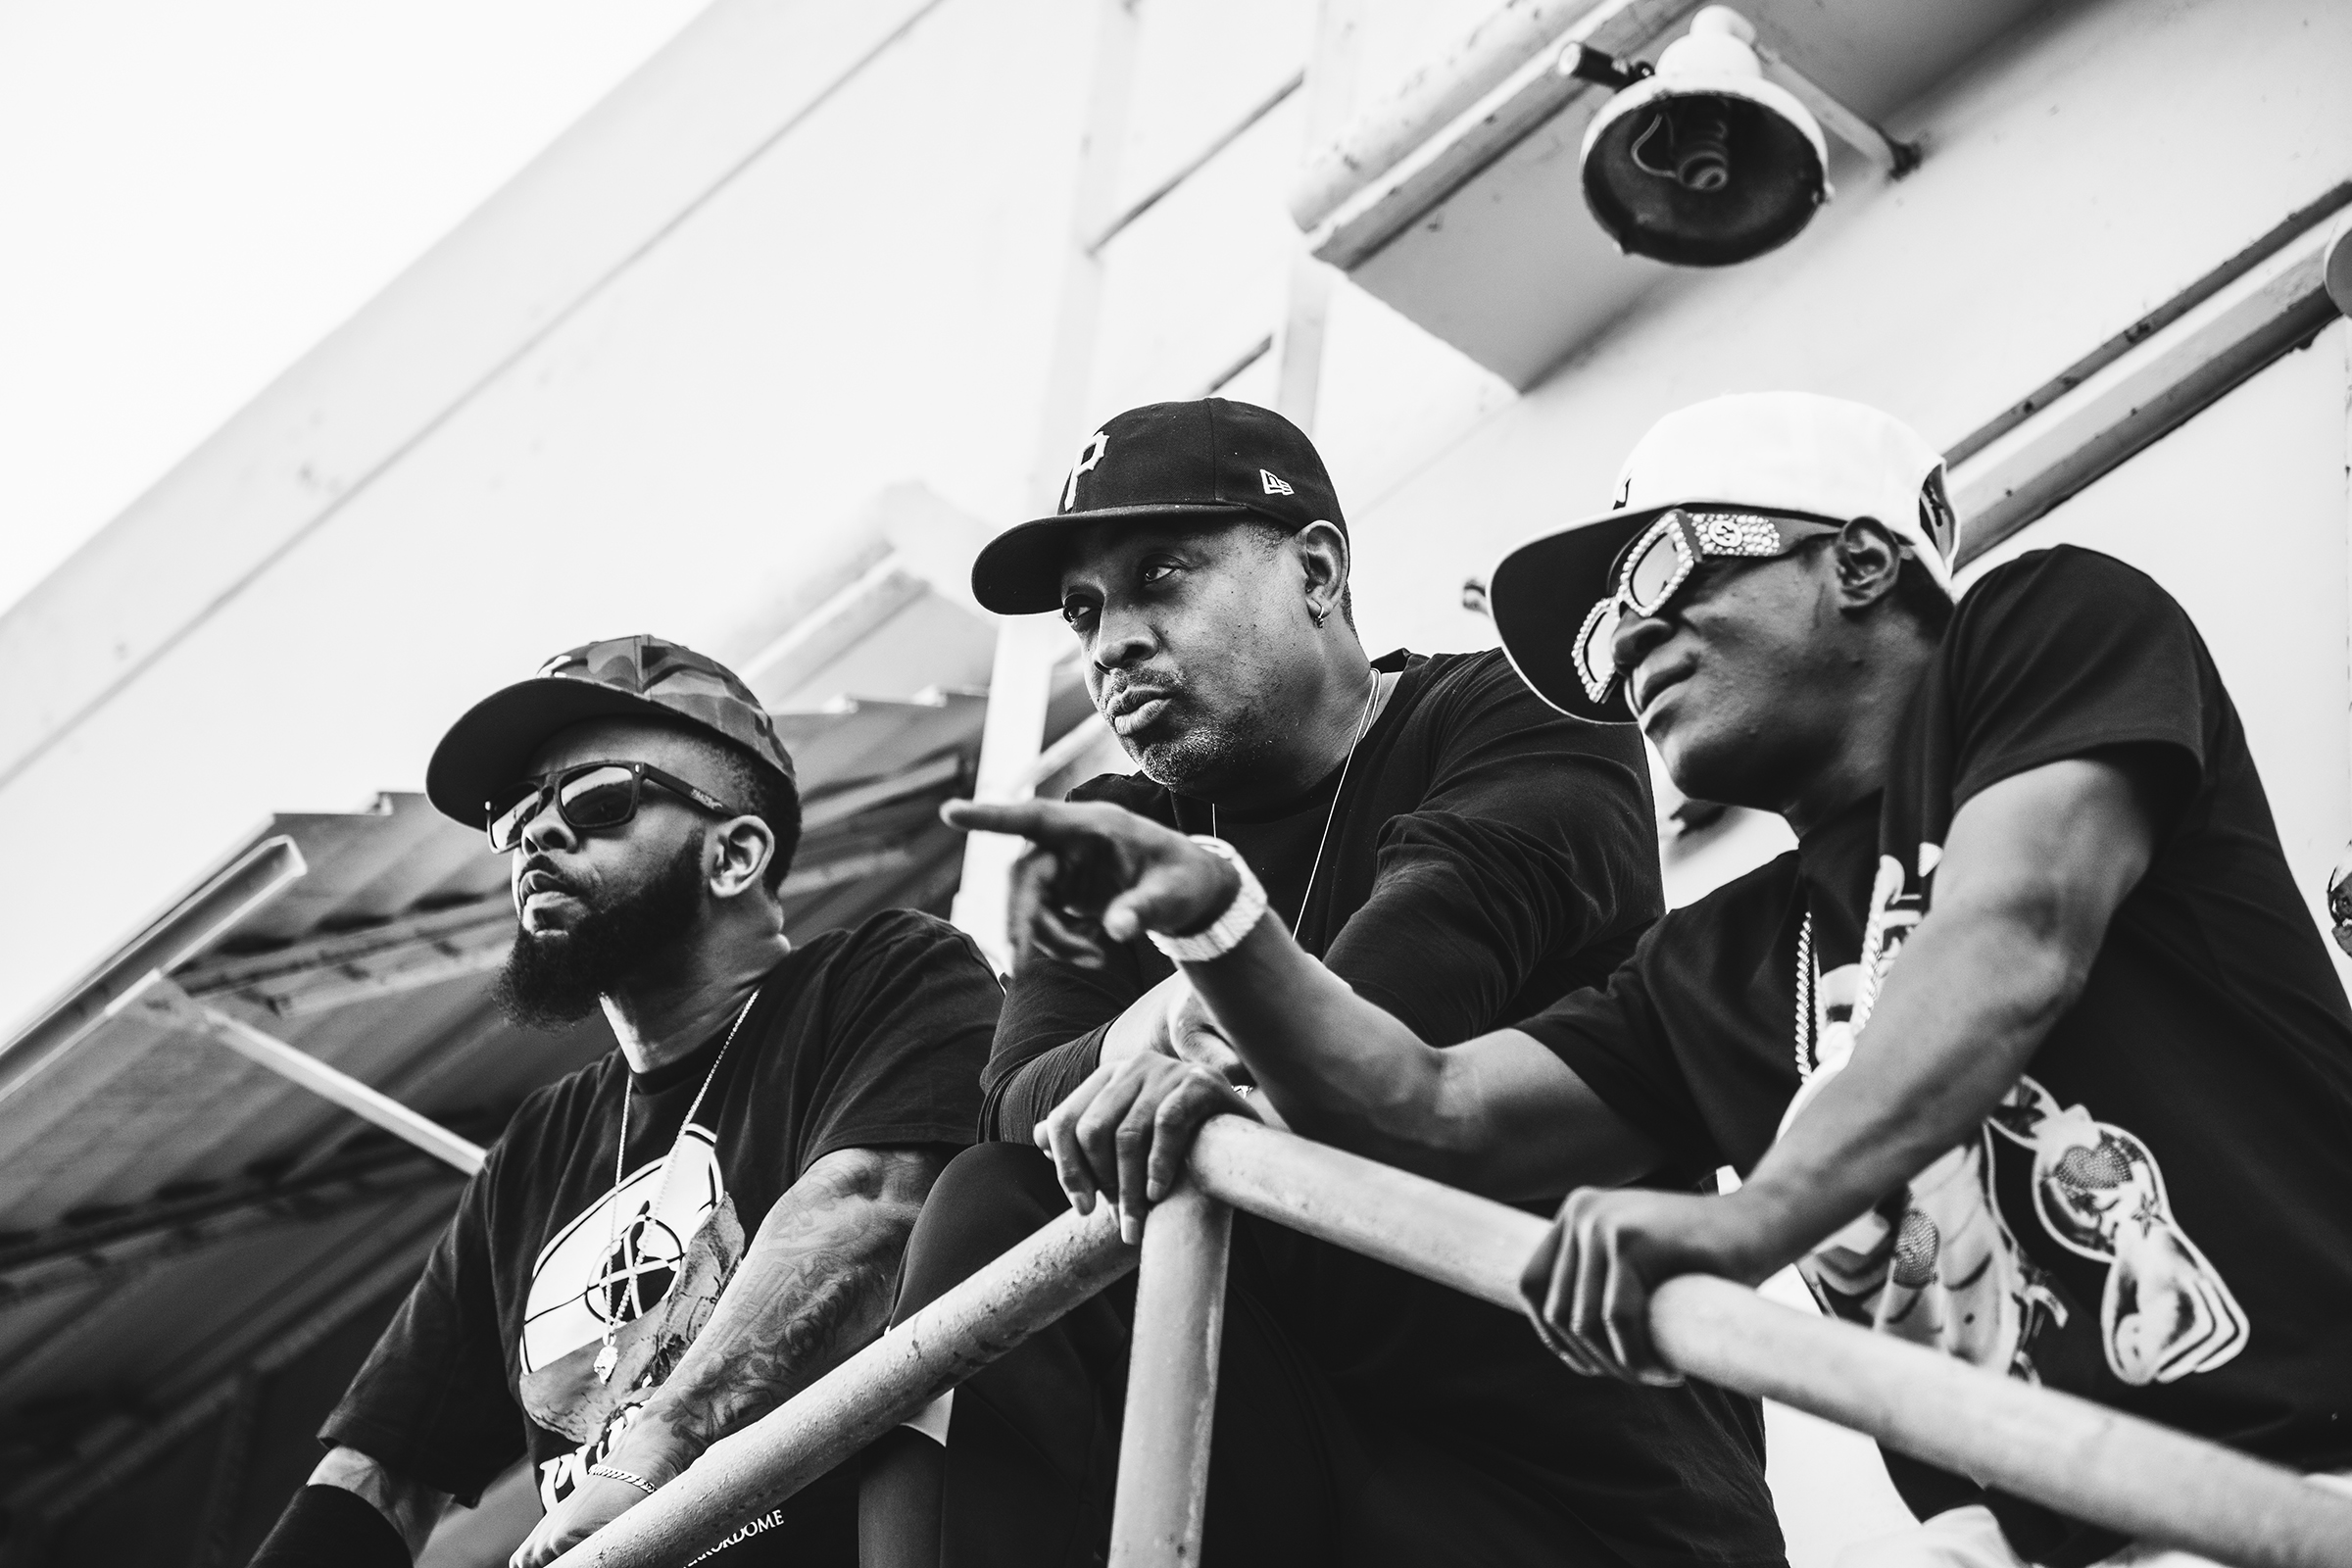 PUBLIC ENEMY shares new animated video ft. Beastie Boys' Ad Rock & Mike D and Run DMC